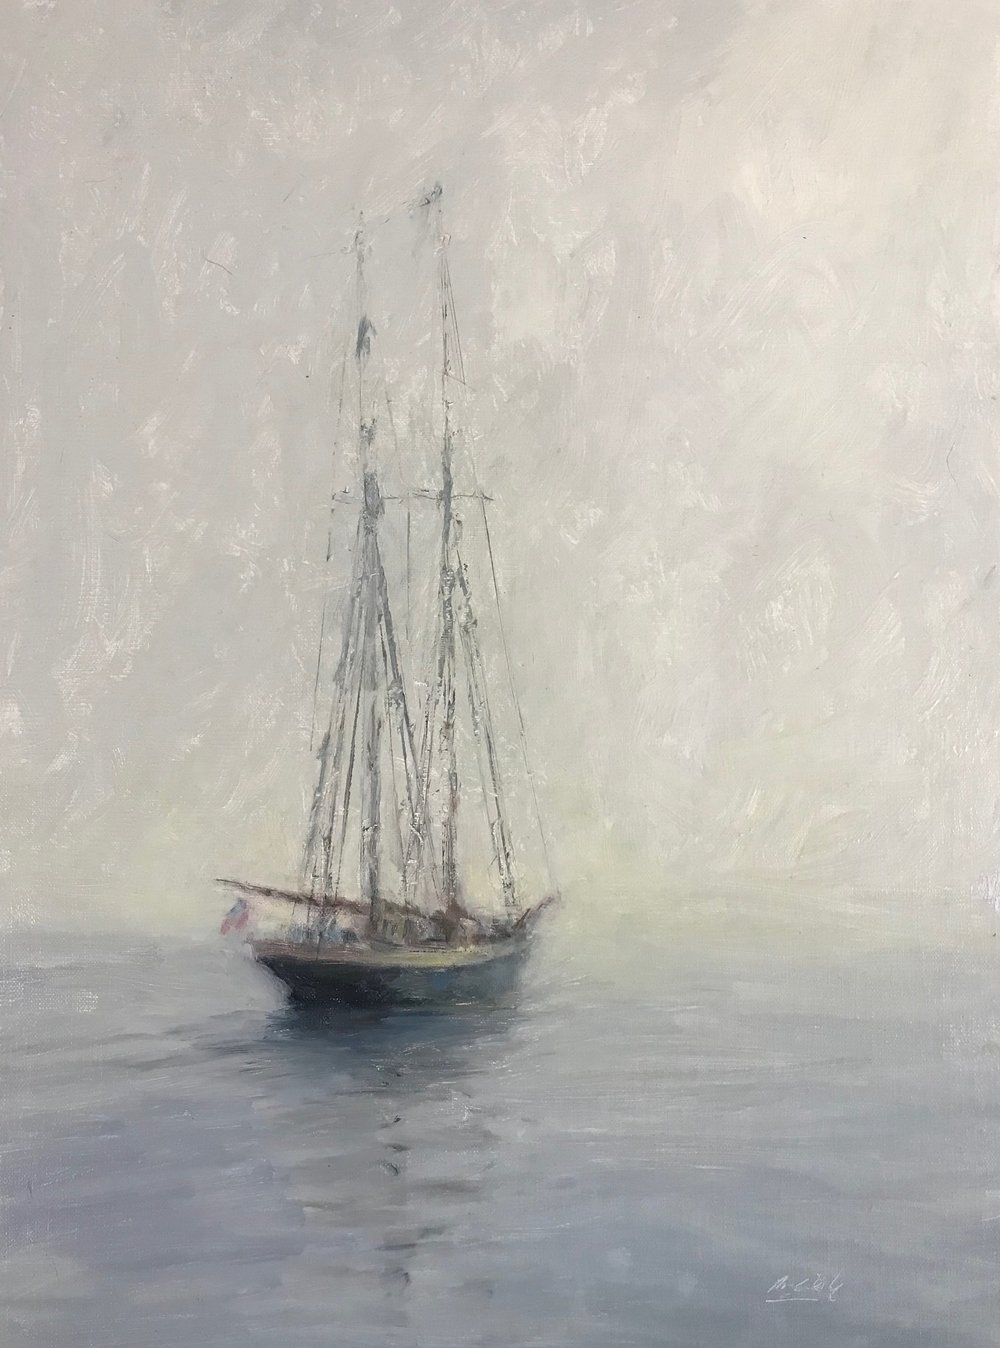 Fog Bound, oil, 16 x 12, SLR by Mark Daly. Sold by Cincinnati Art Galleries.